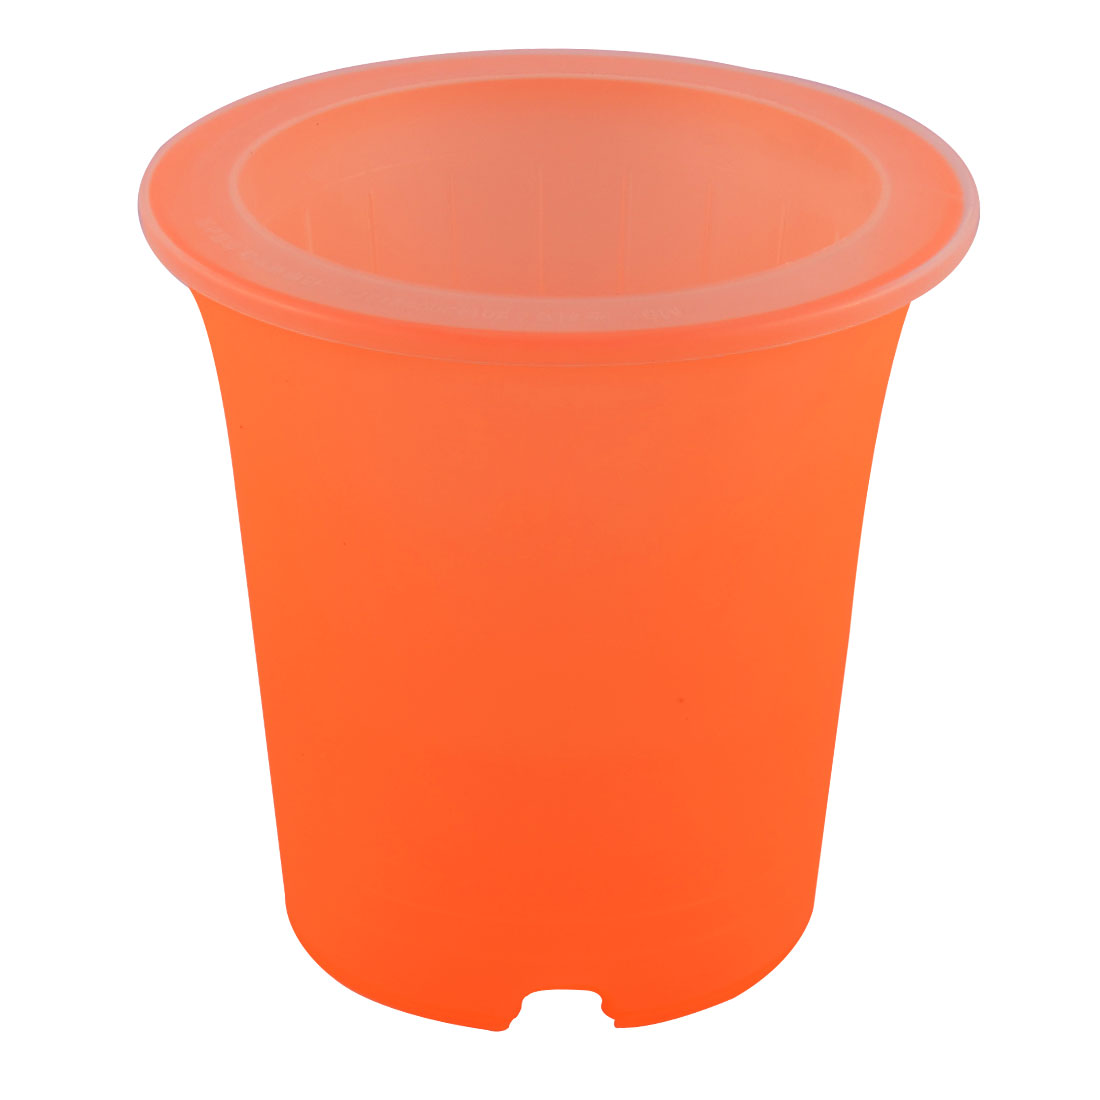 Office Desktop Decor Plastic Self Watering Planter Garden Pot Orange